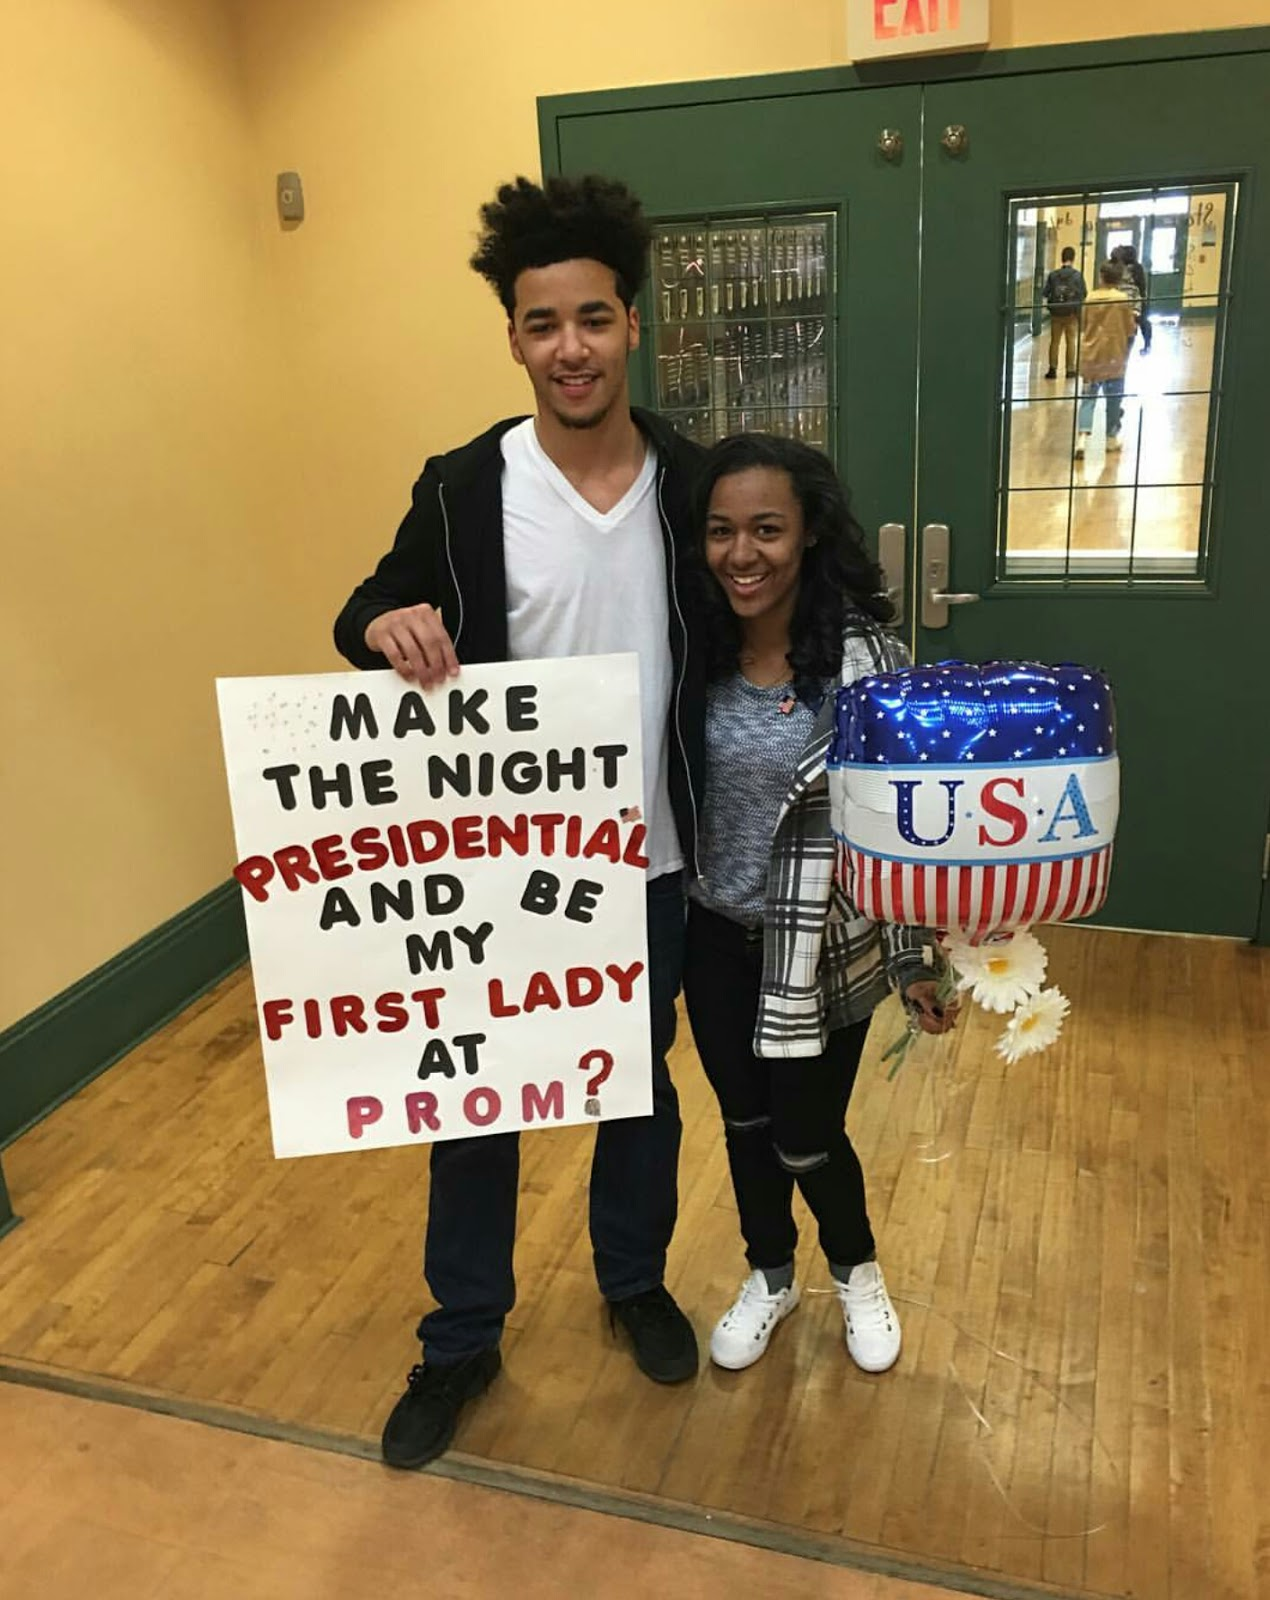 Promposals That Will Blow Her Away | Creative prom ... |Creative Prom Proposal Ideas